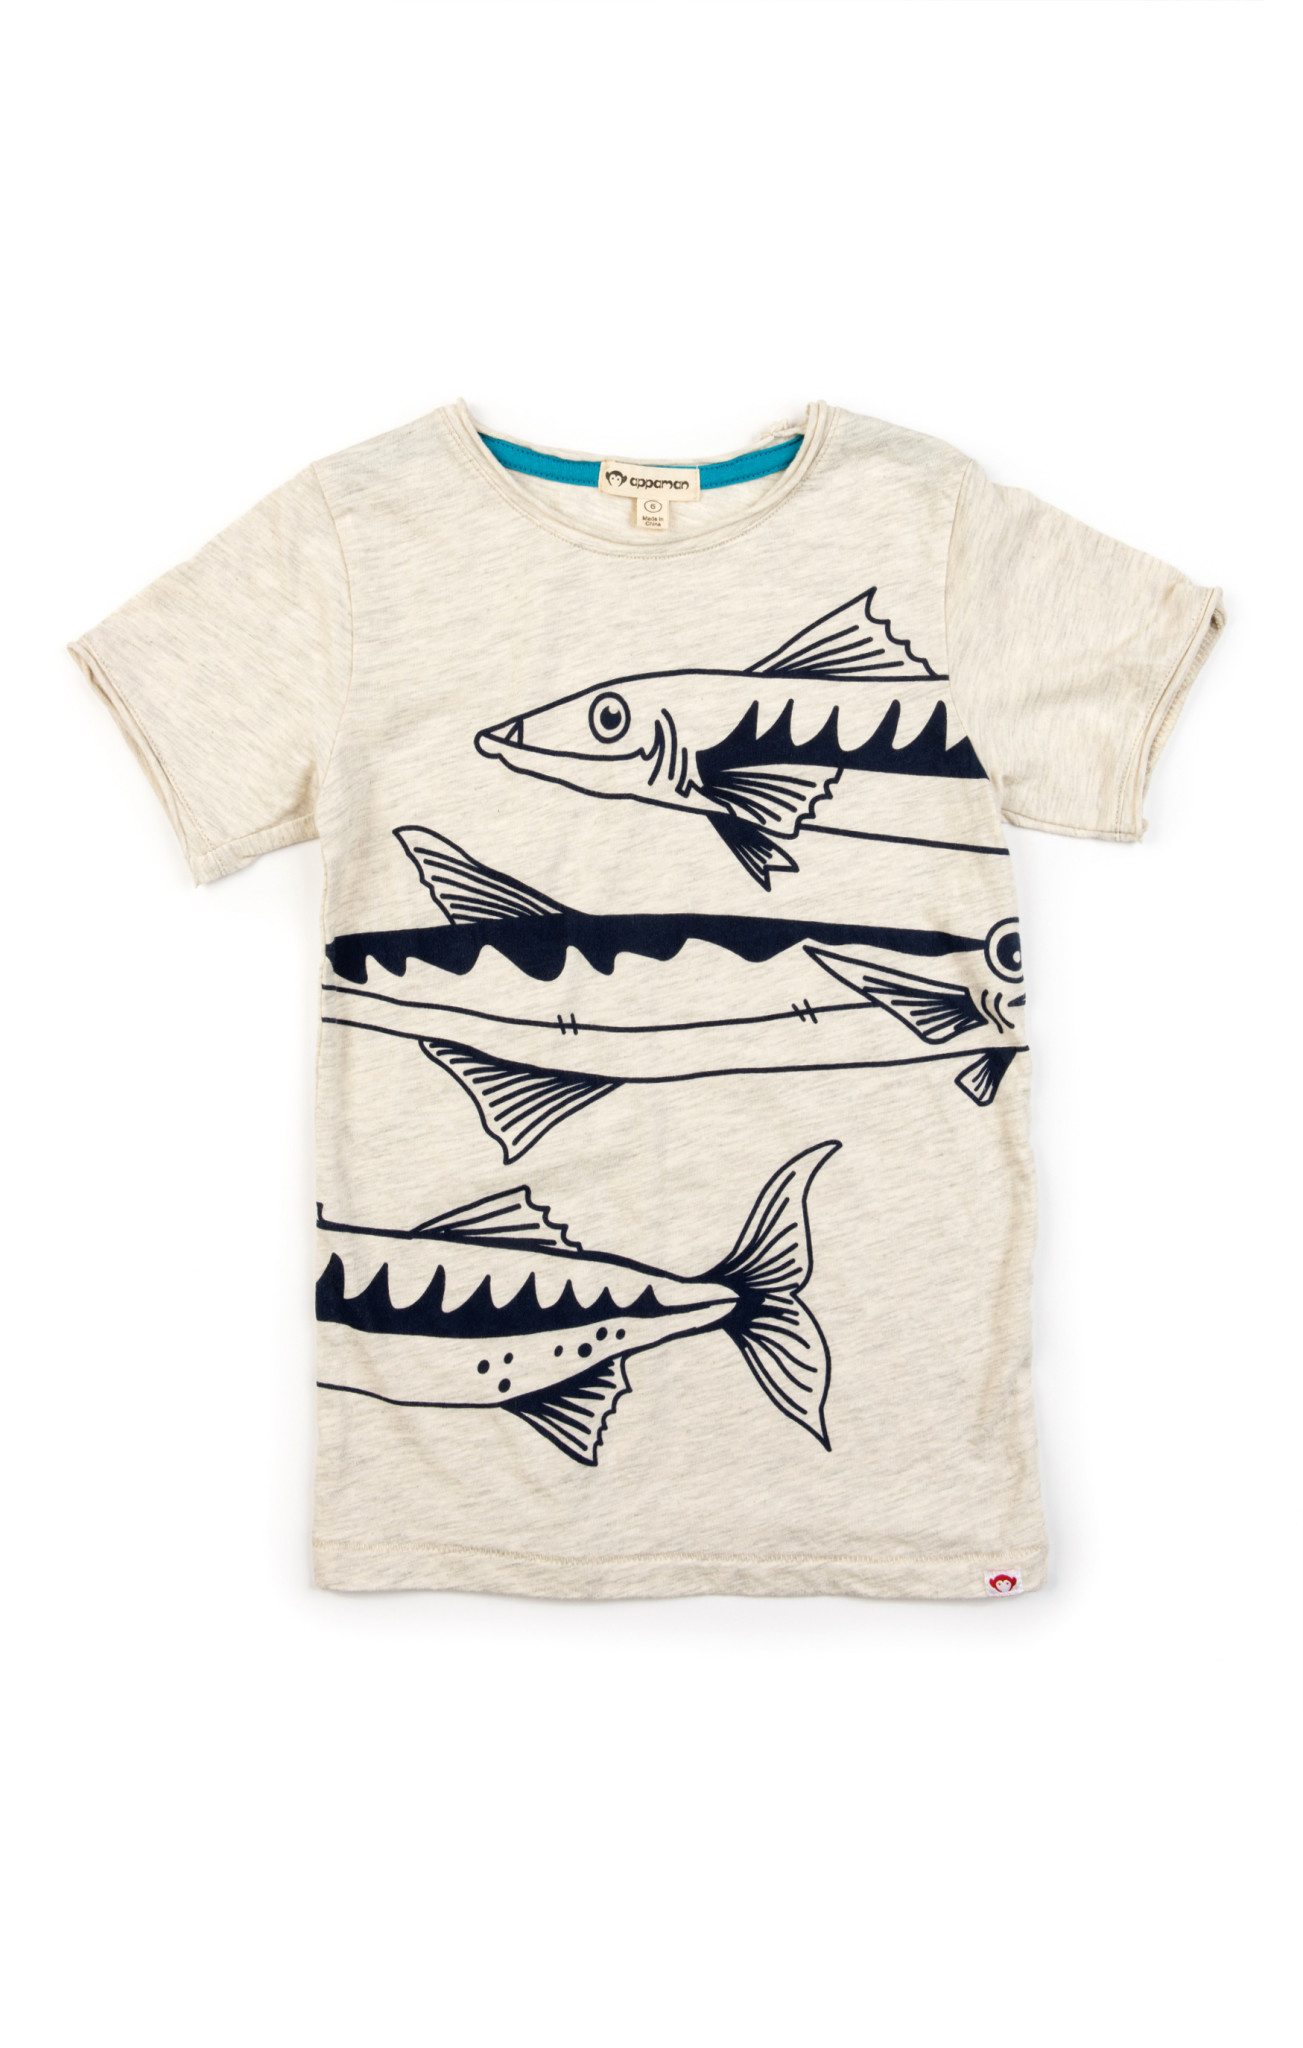 APPAMAN Graphic Short Sleeve Tee Barracuda